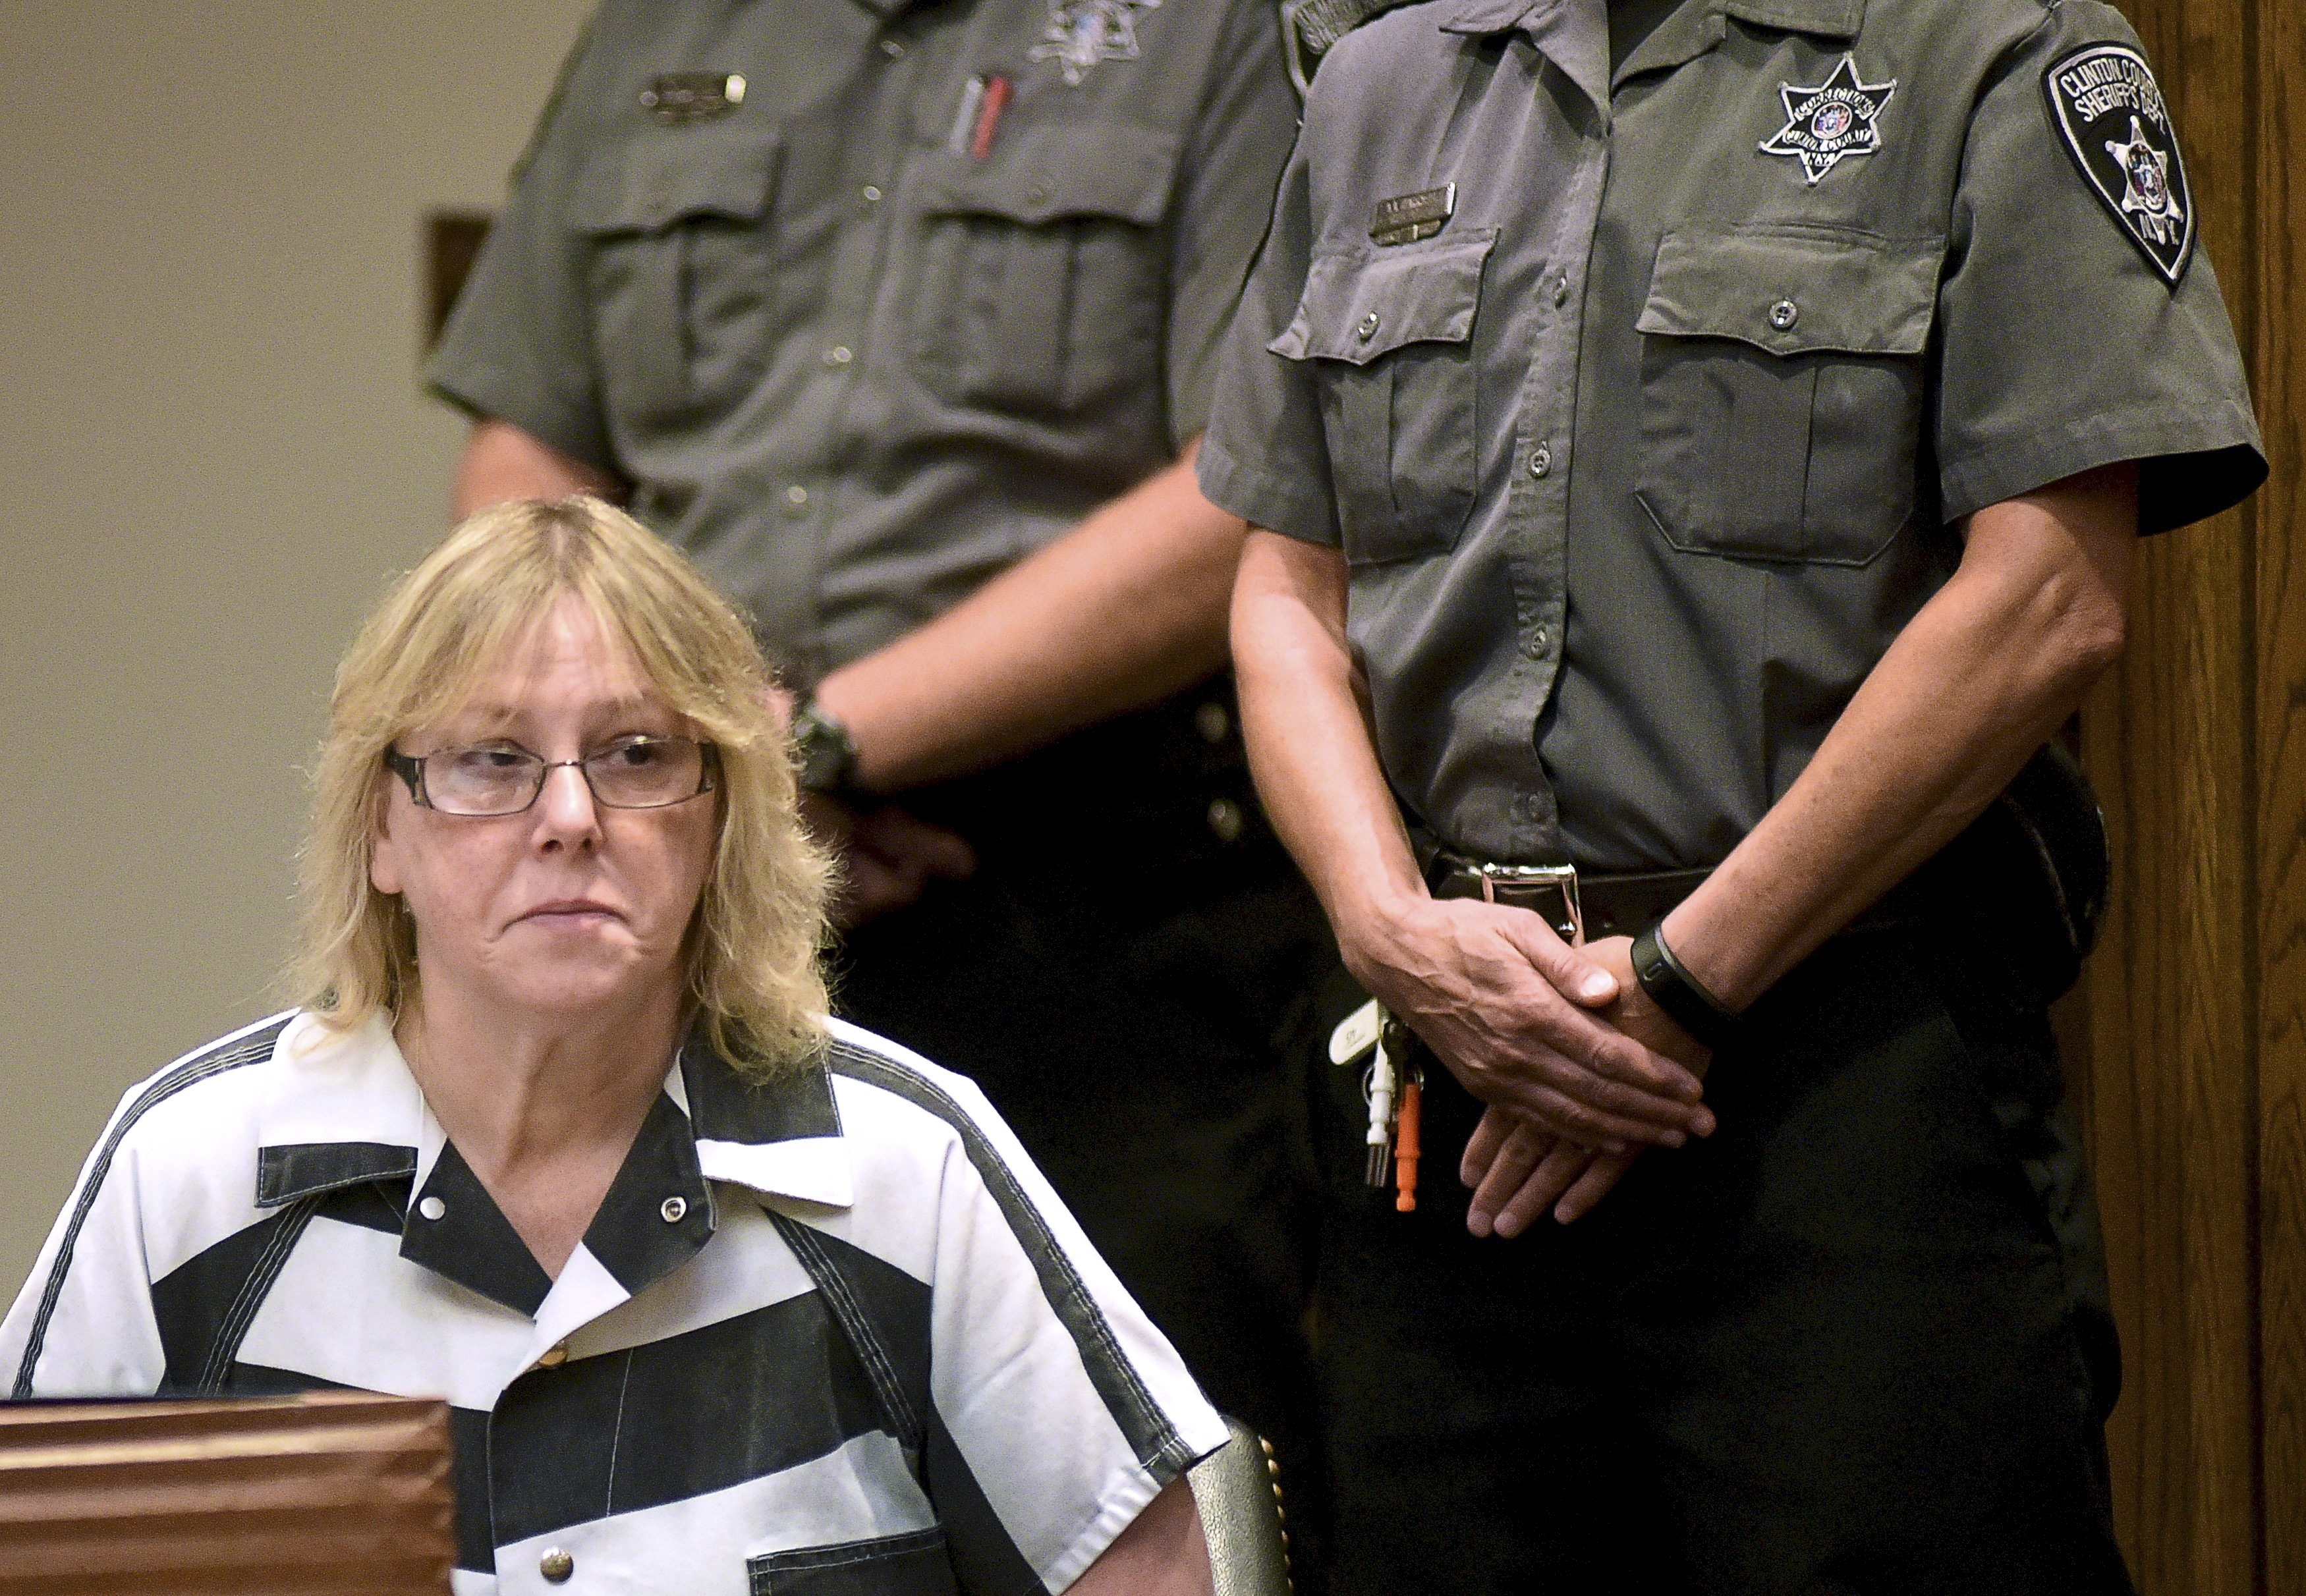 Joyce Mitchell appears at Clinton County  Court in Plattsburgh on Tuesday, where she pleaded guilty to charges that she helped two convicted killers escape from the Clinton Correctional Facility.